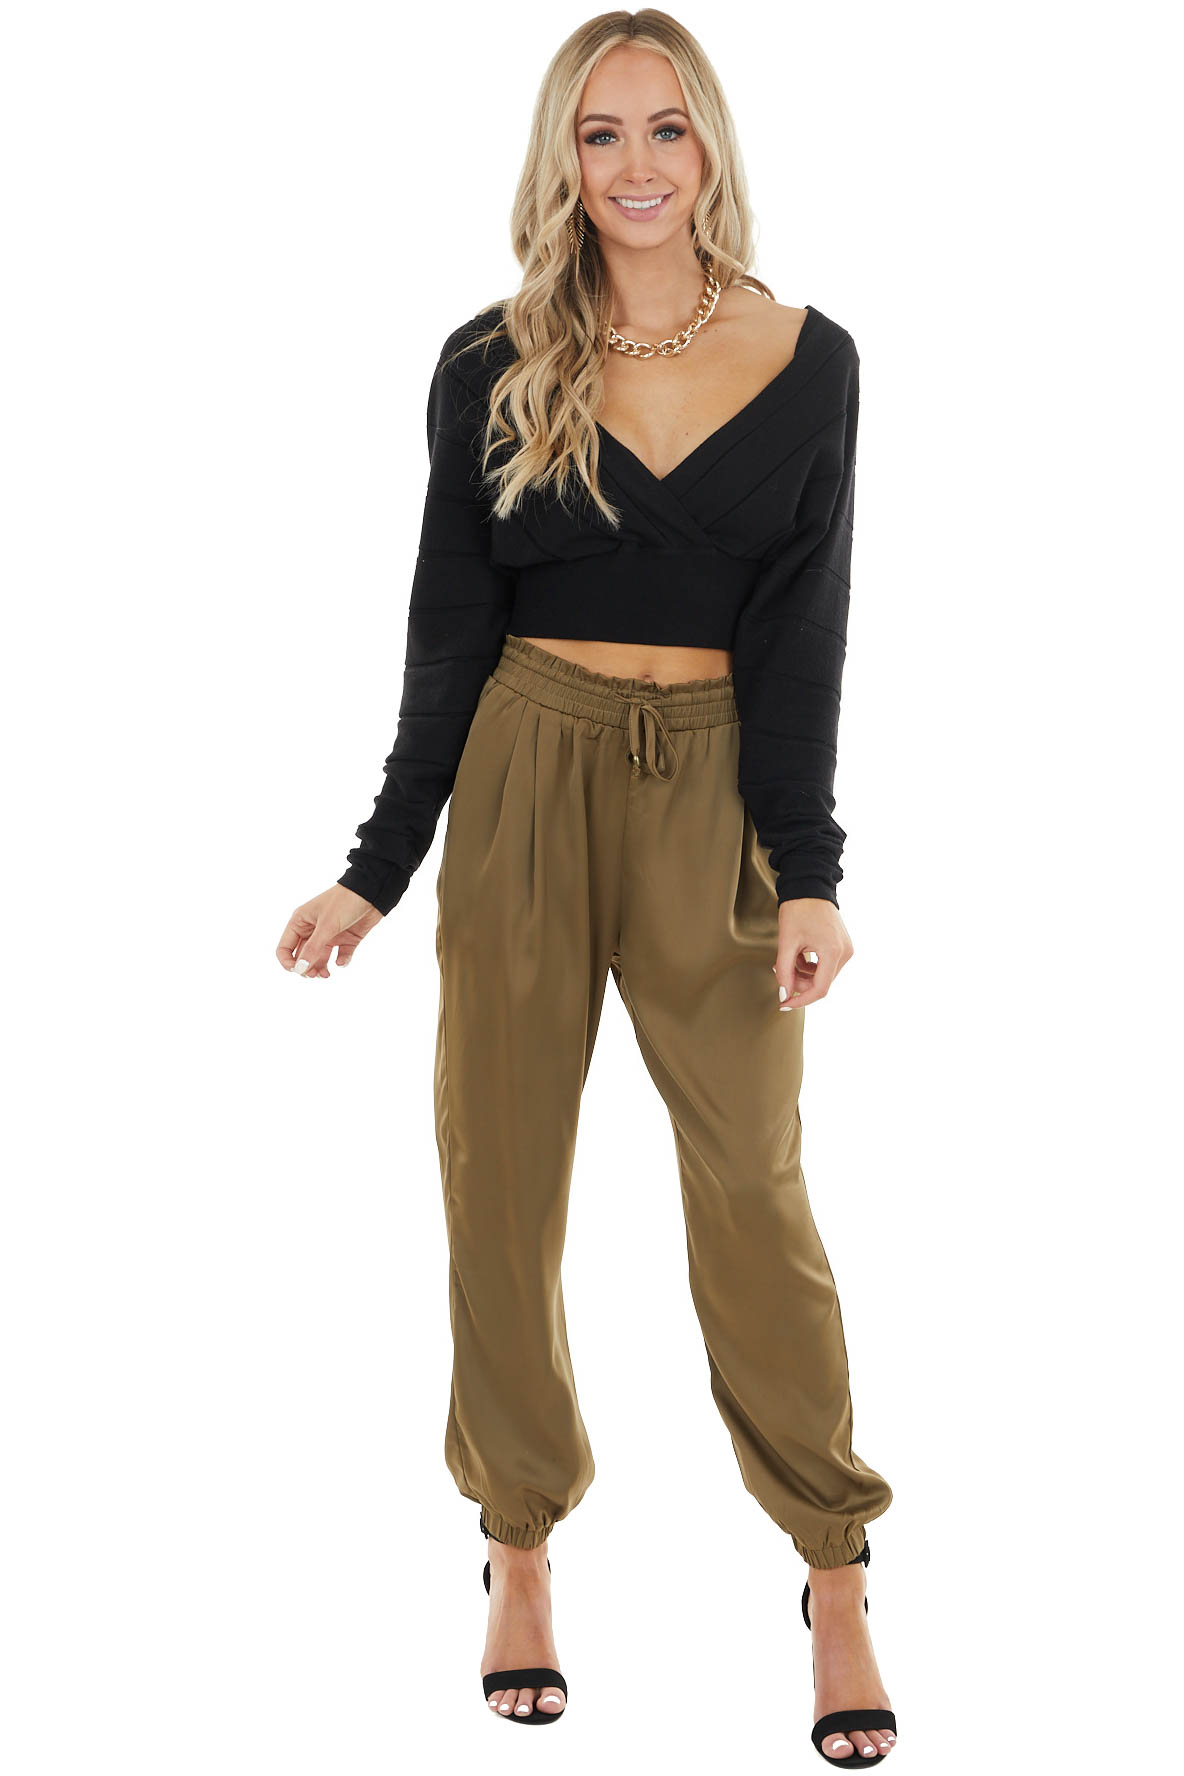 Olive Satin Jogger Pants with Pockets and Drawstring Details